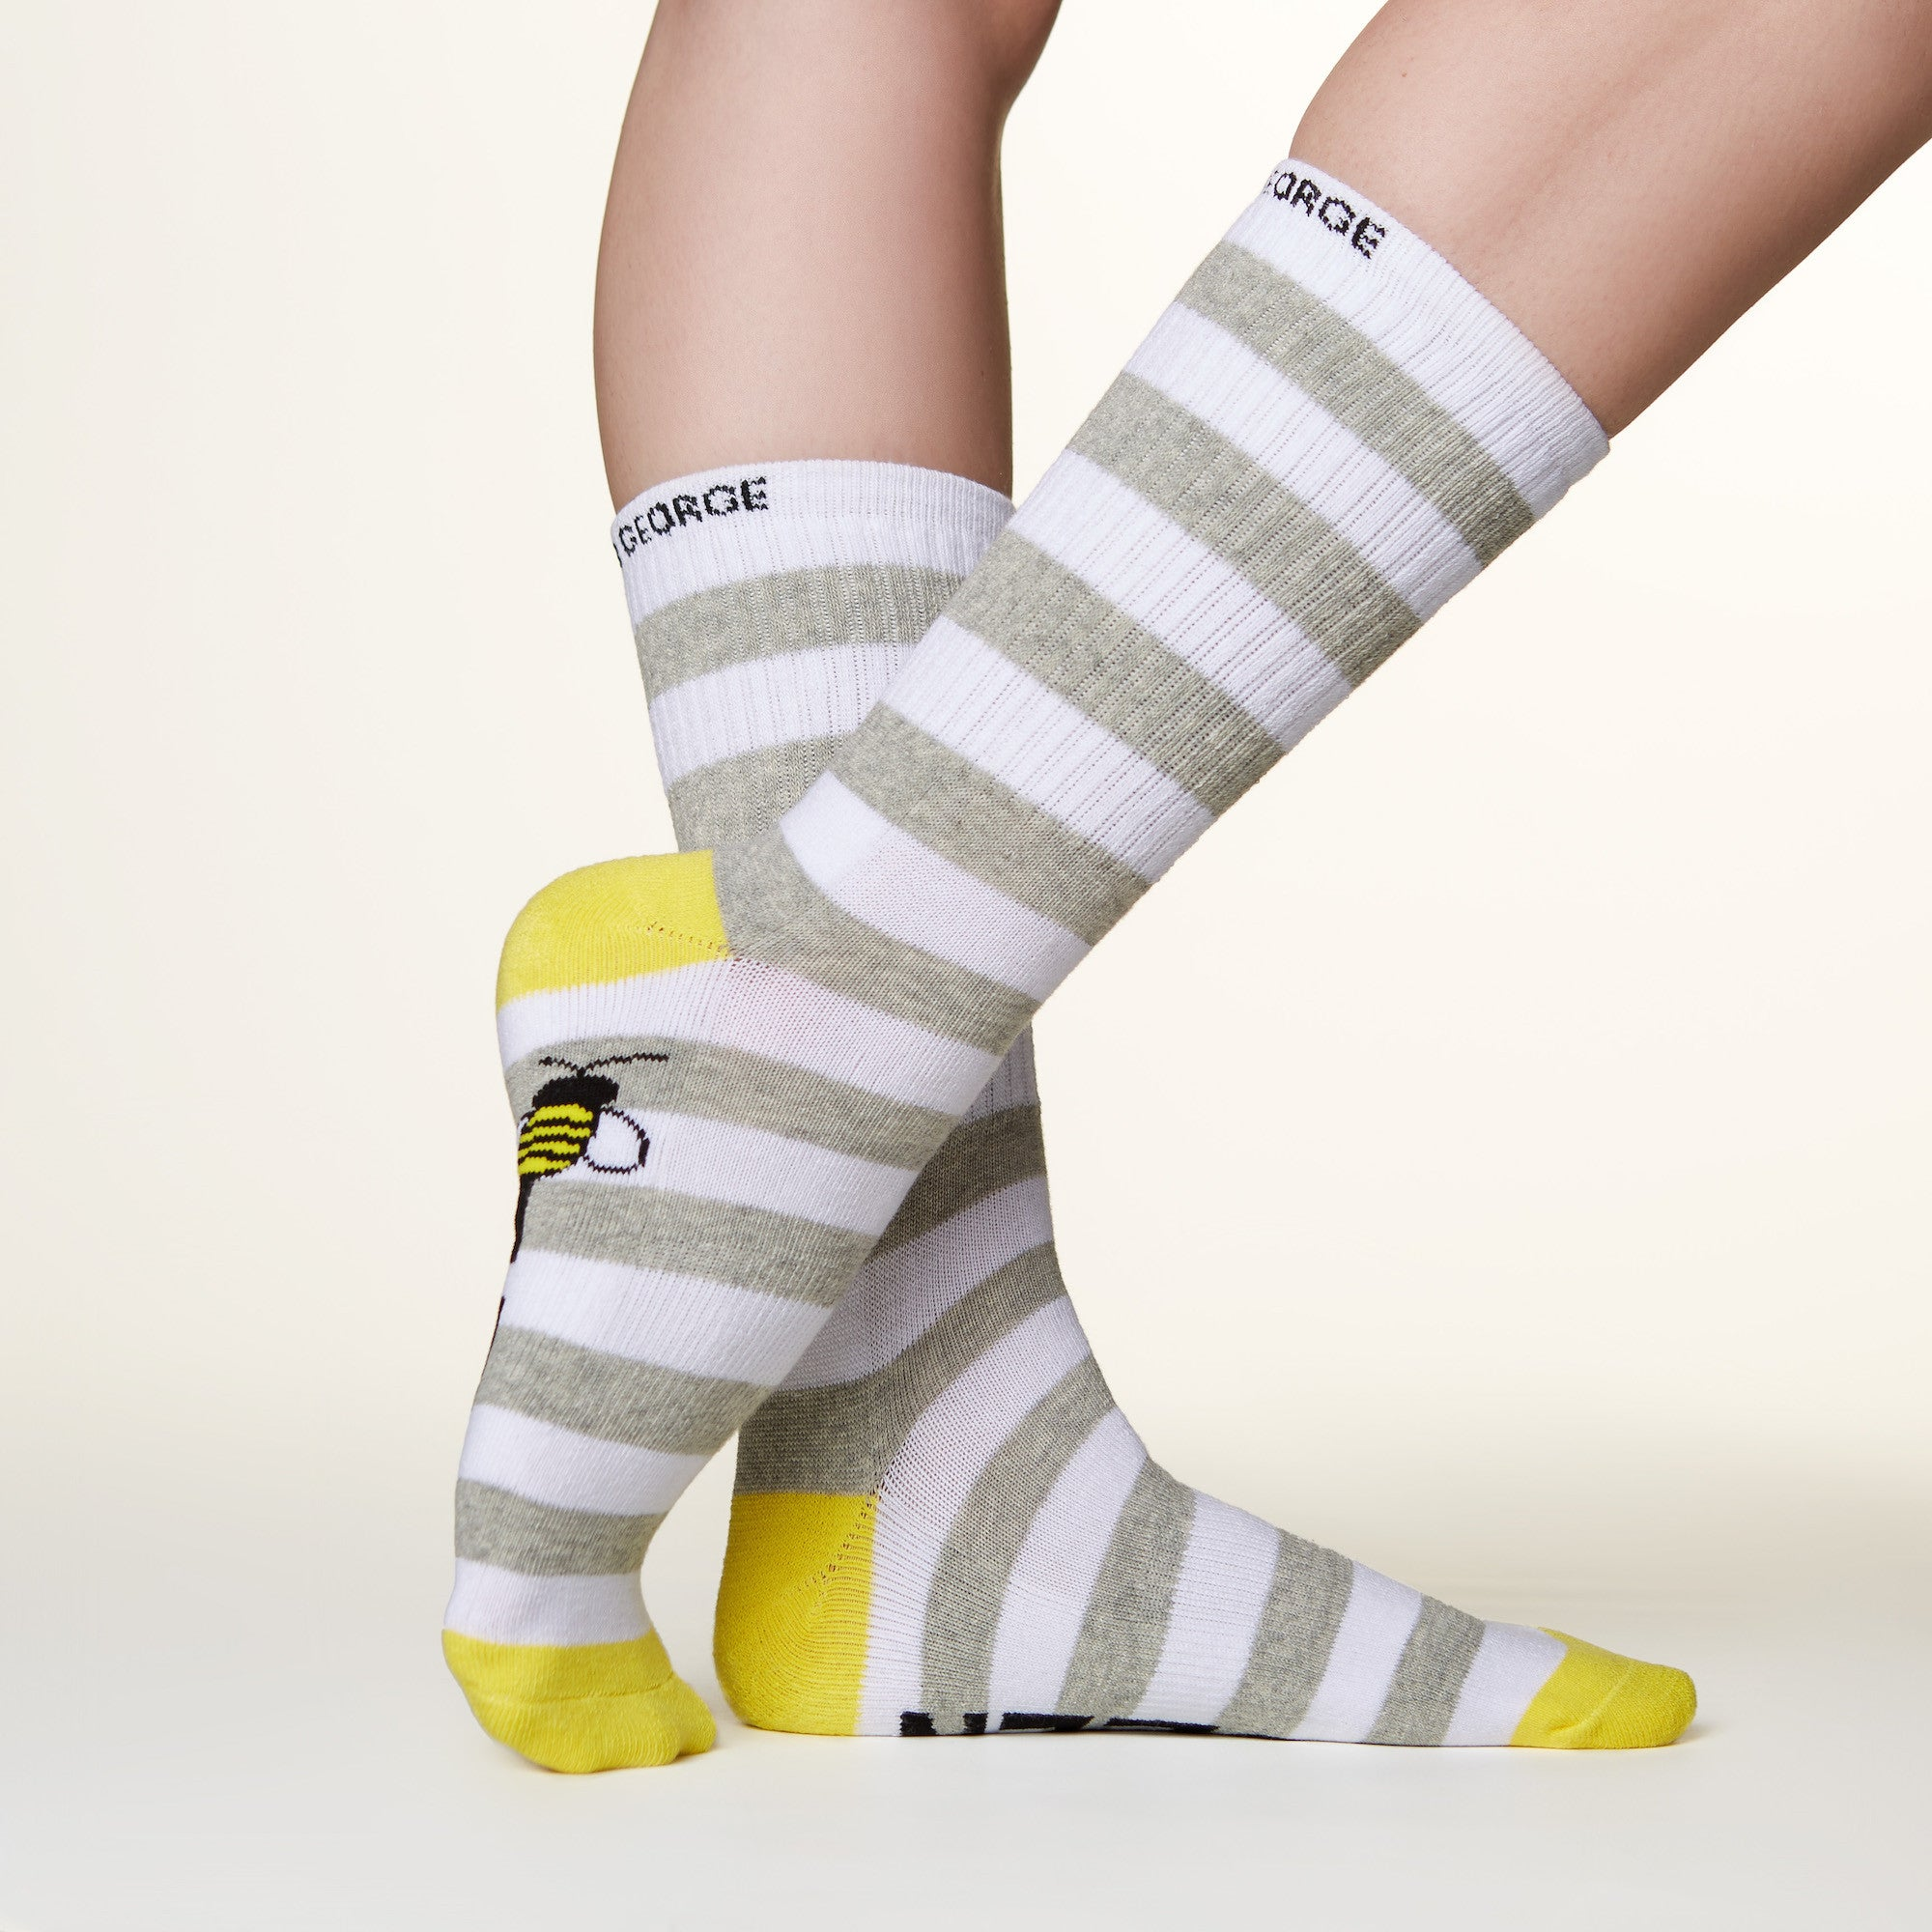 Queen bee socks side profile view